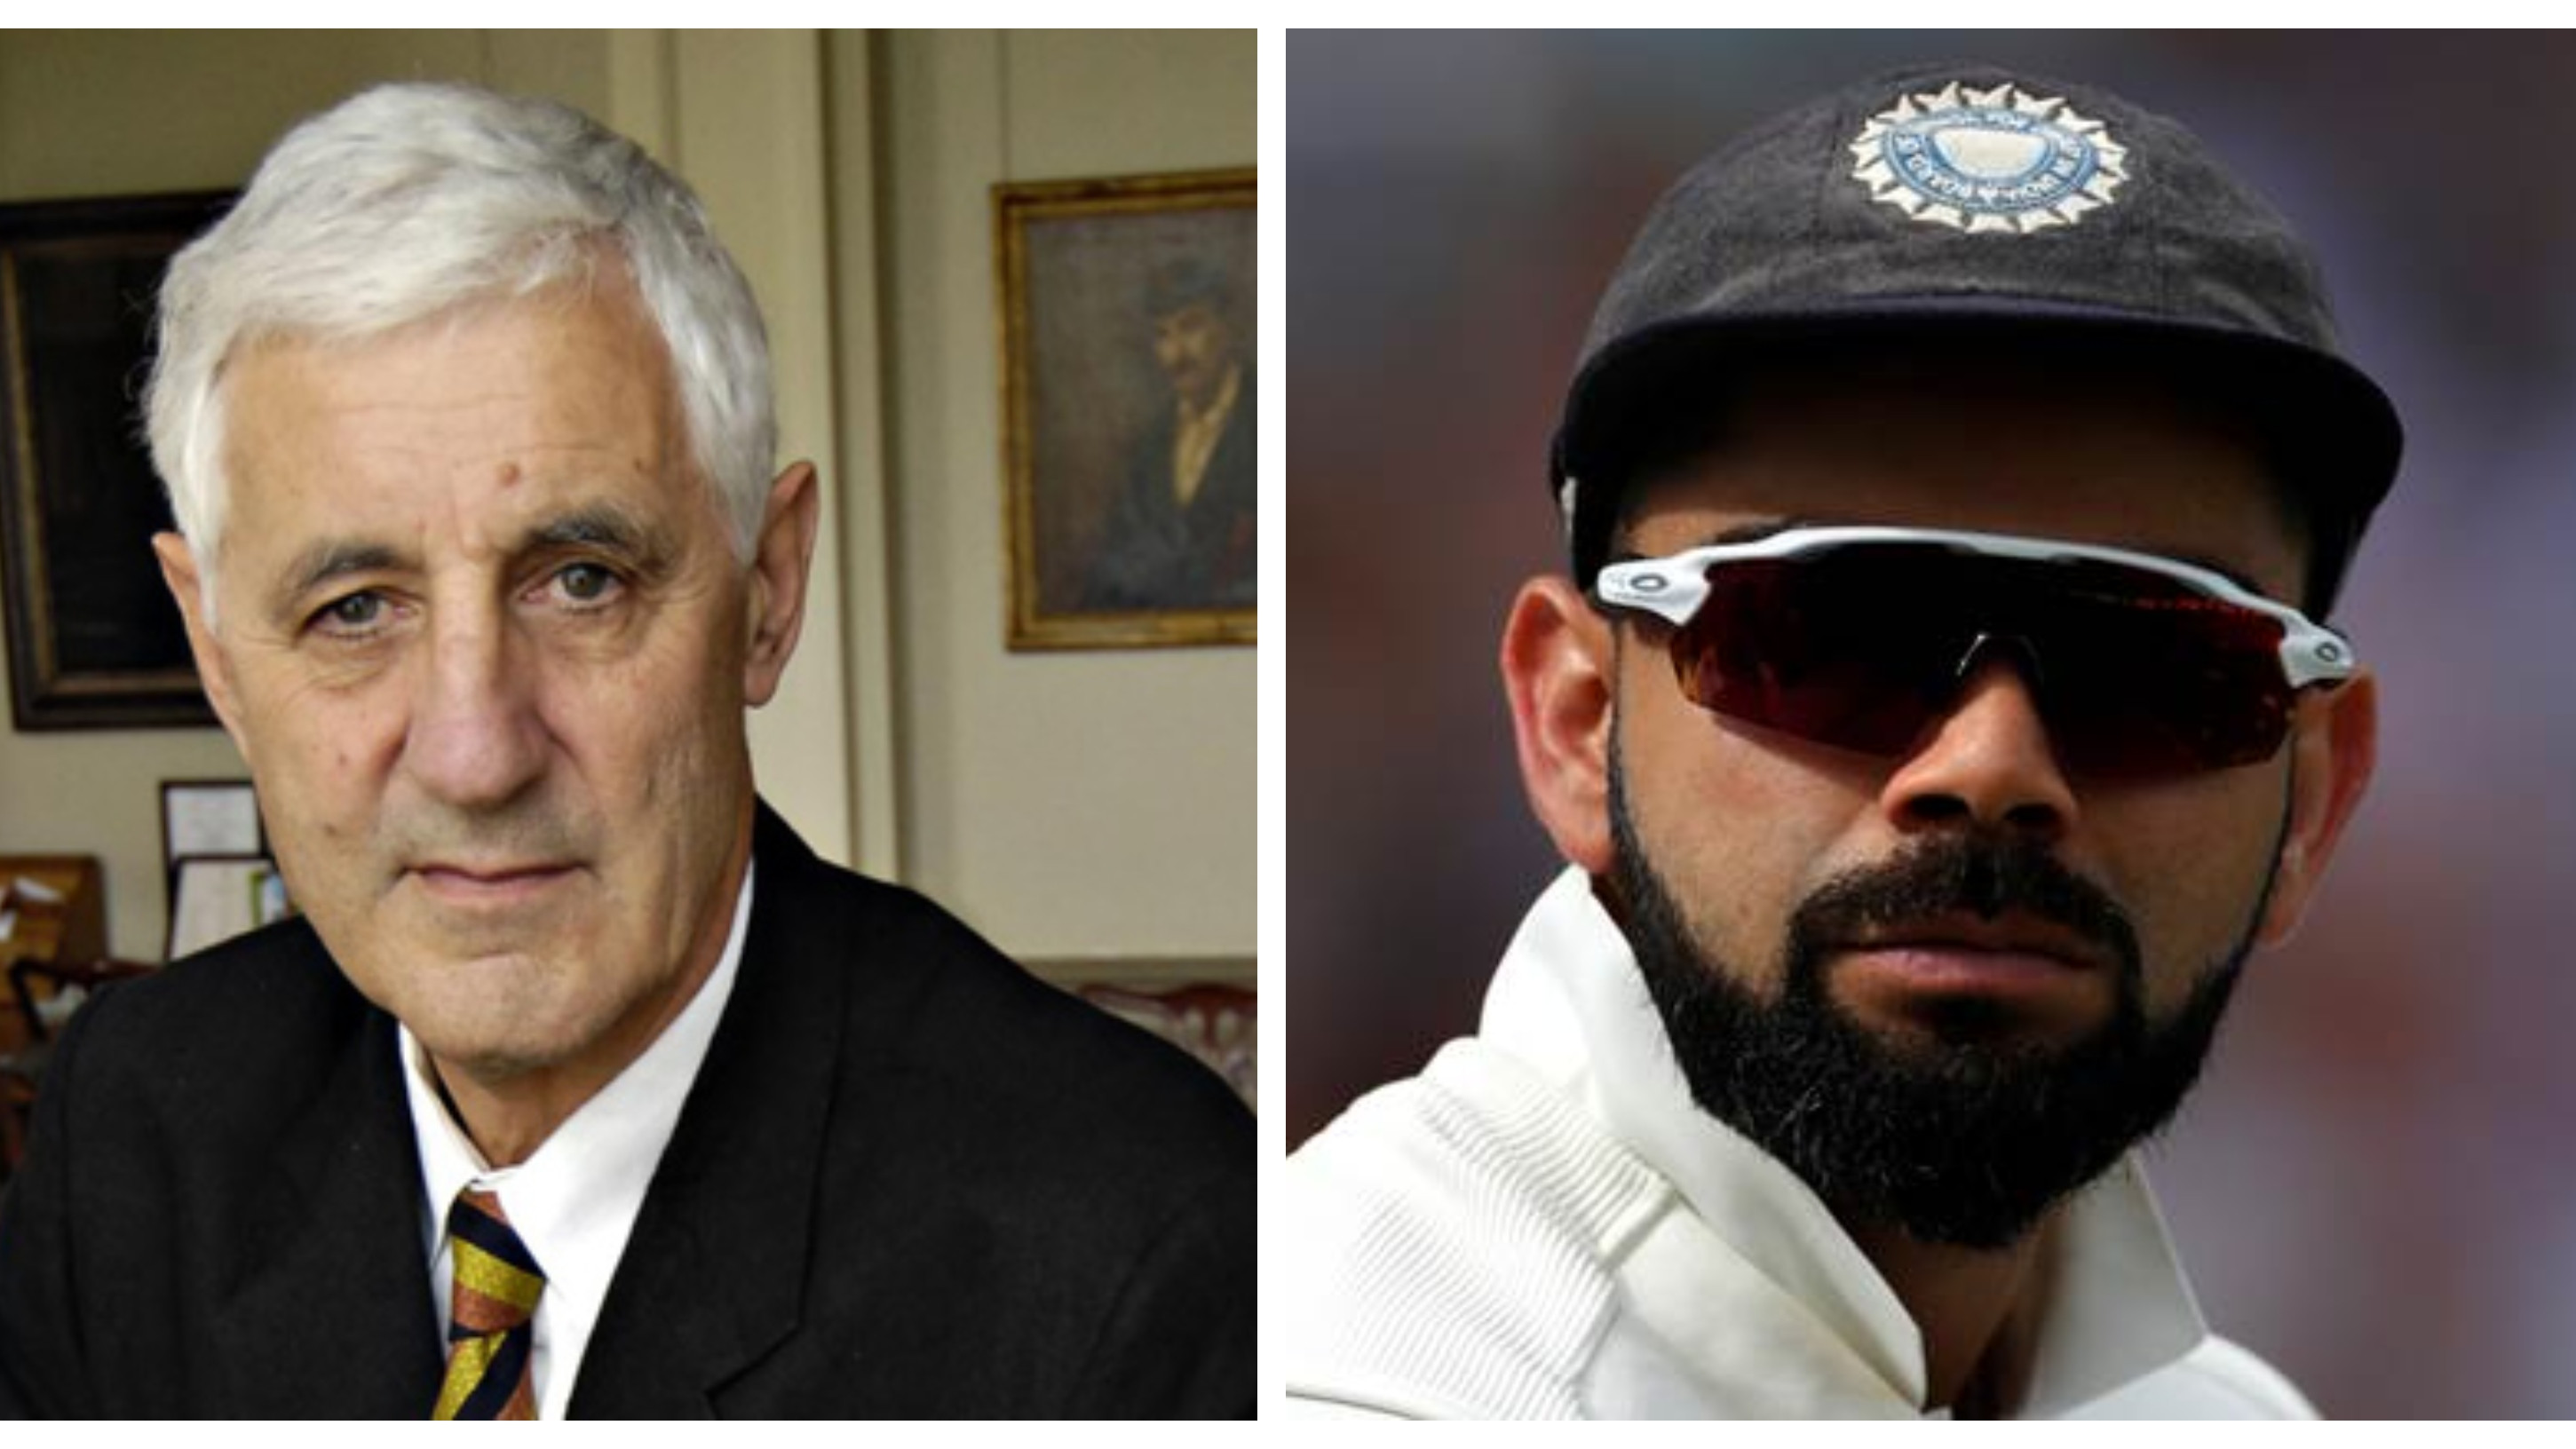 AUS v IND 2018-19: Virat's tendency to detach himself from the game is worrying, says Mike Brearley